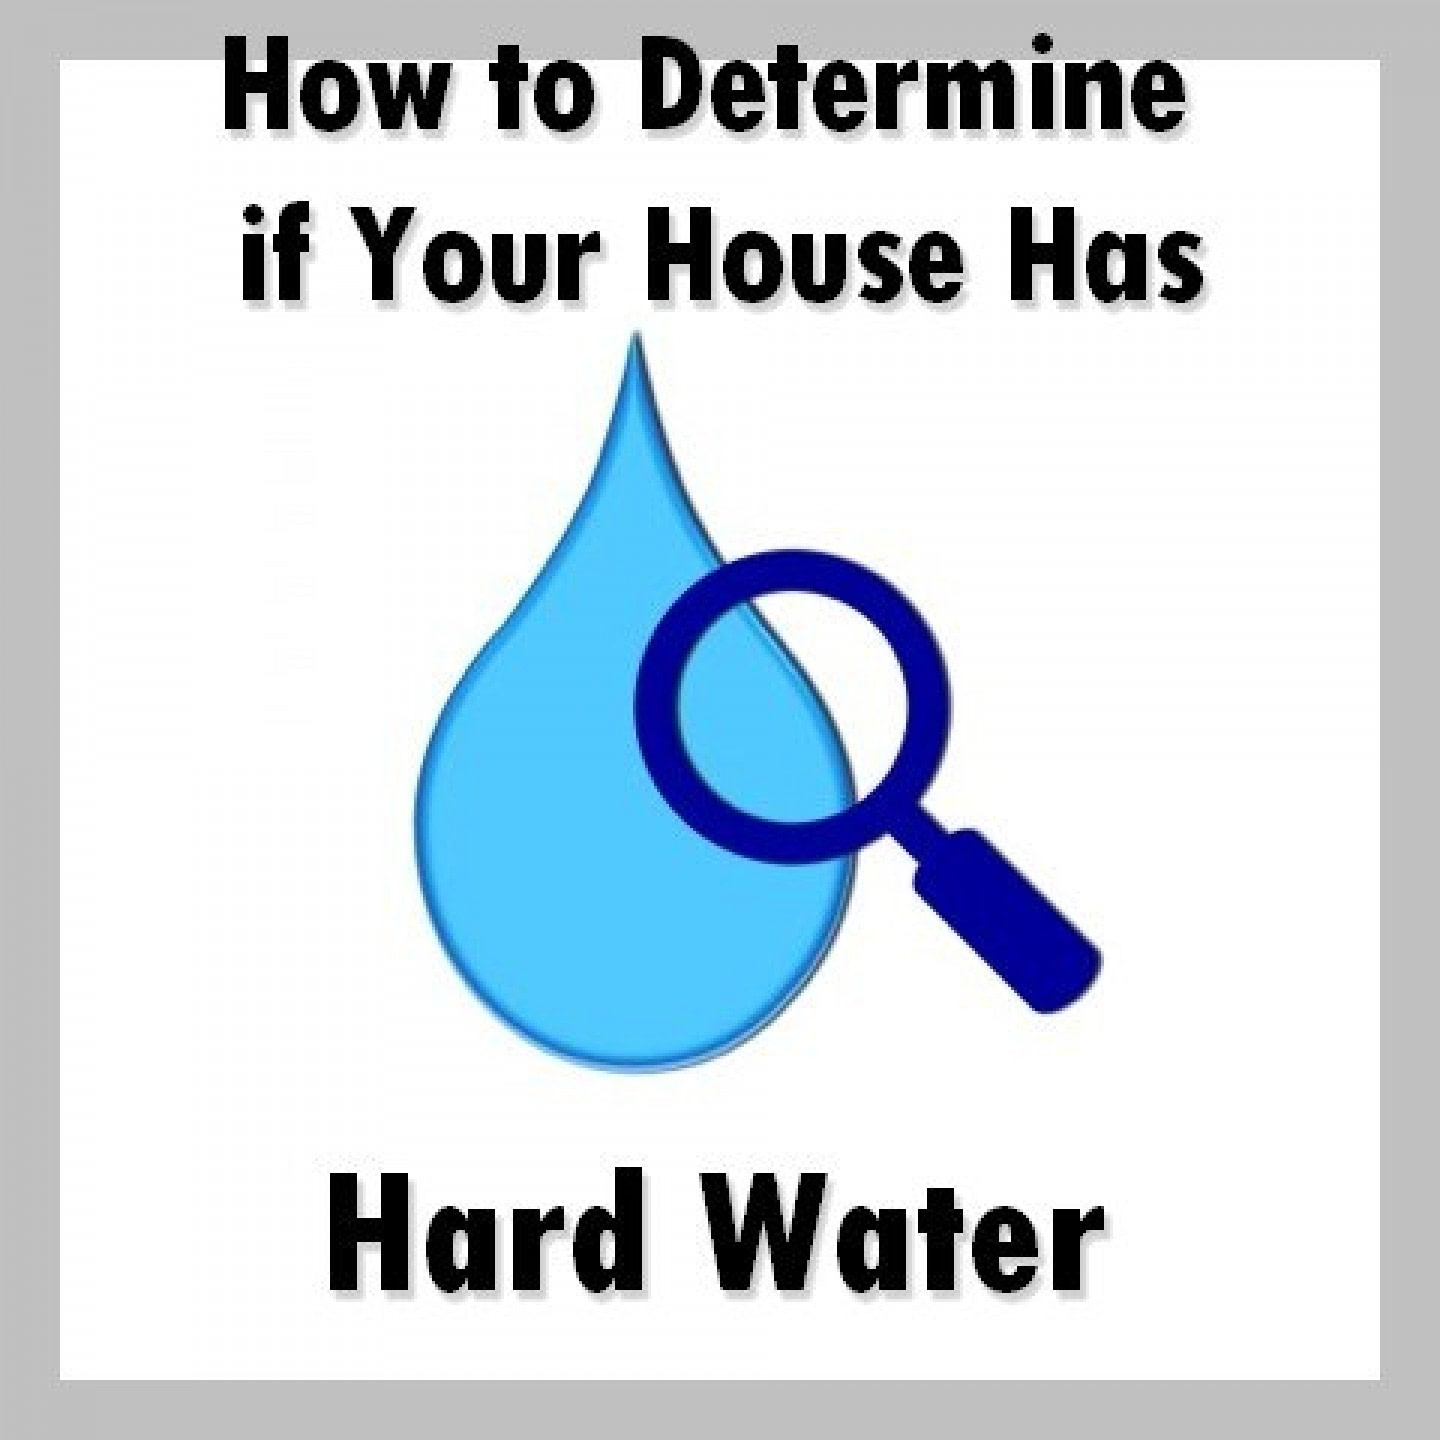 How to Determine if Your House has hard water